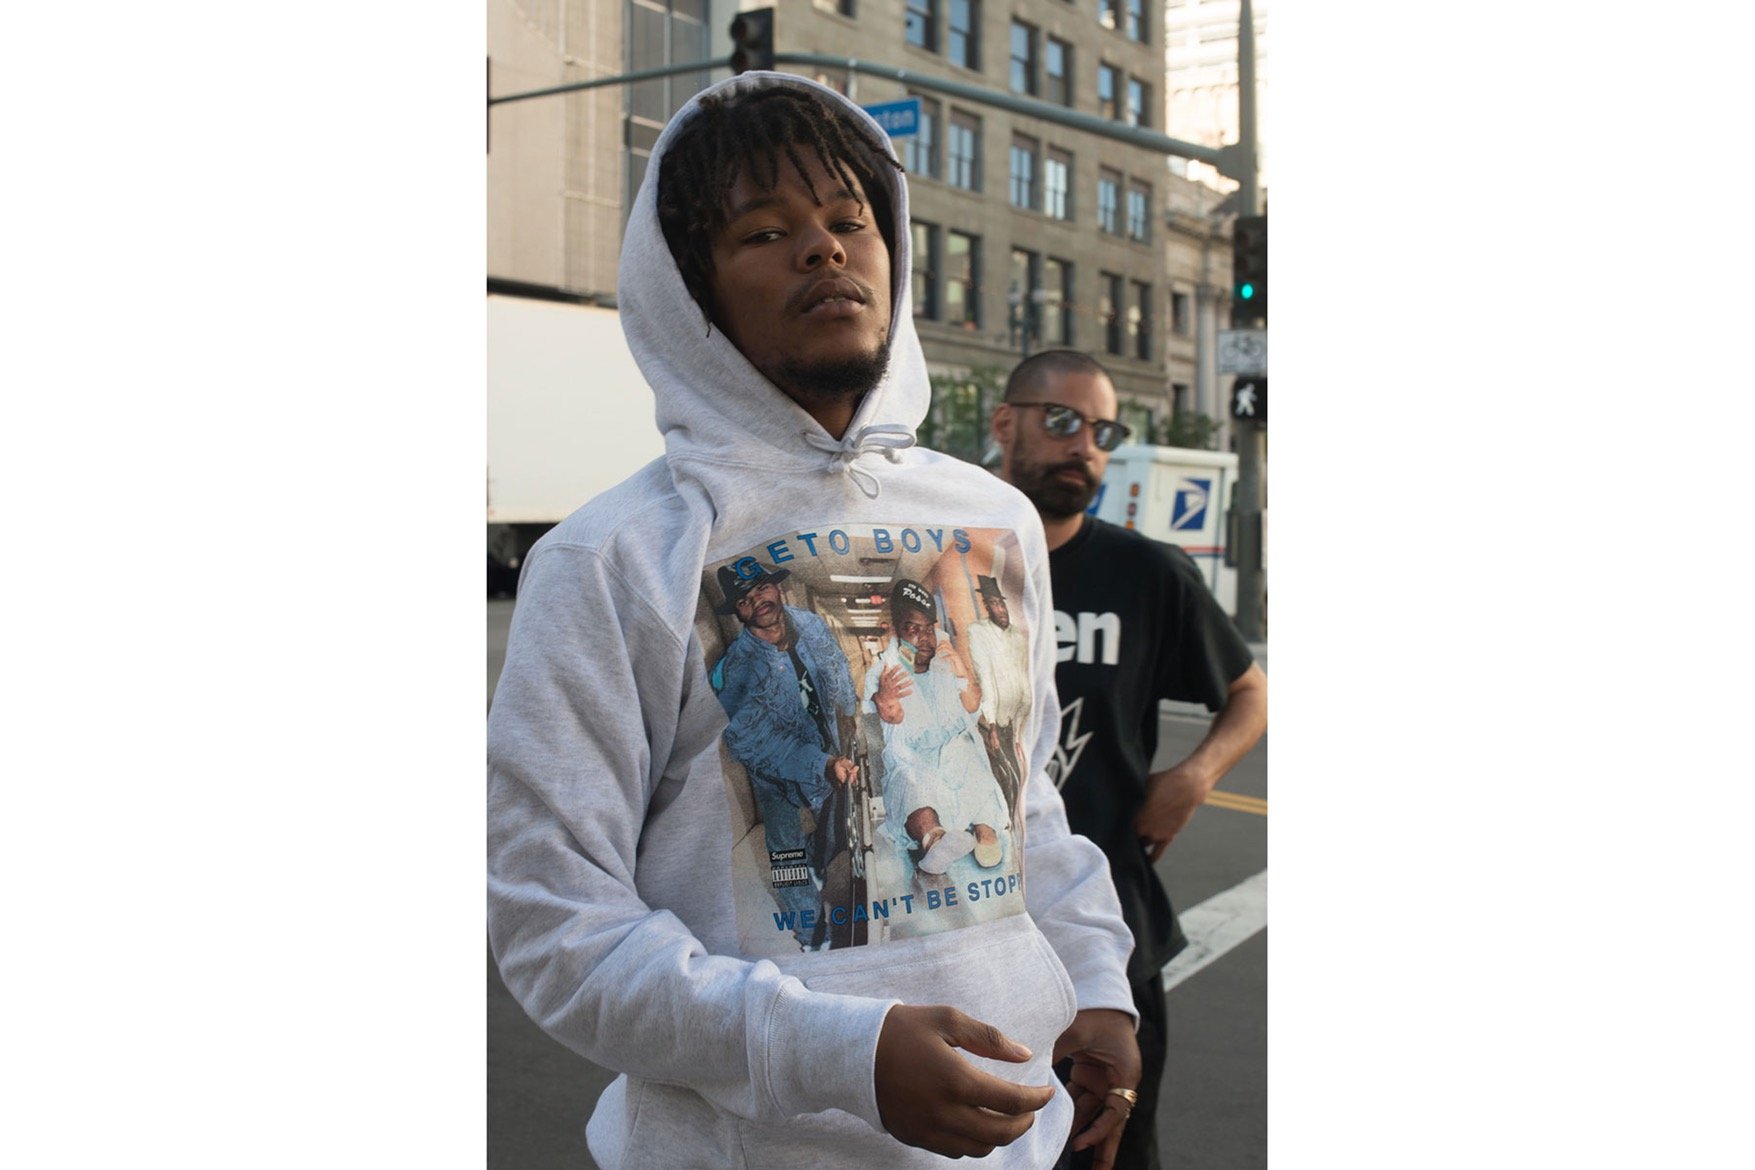 http-%2f%2fhypebeast-com%2fimage%2f2017%2f04%2fsupreme-rap-a-lot-records-2017-spring-summer-collection-2